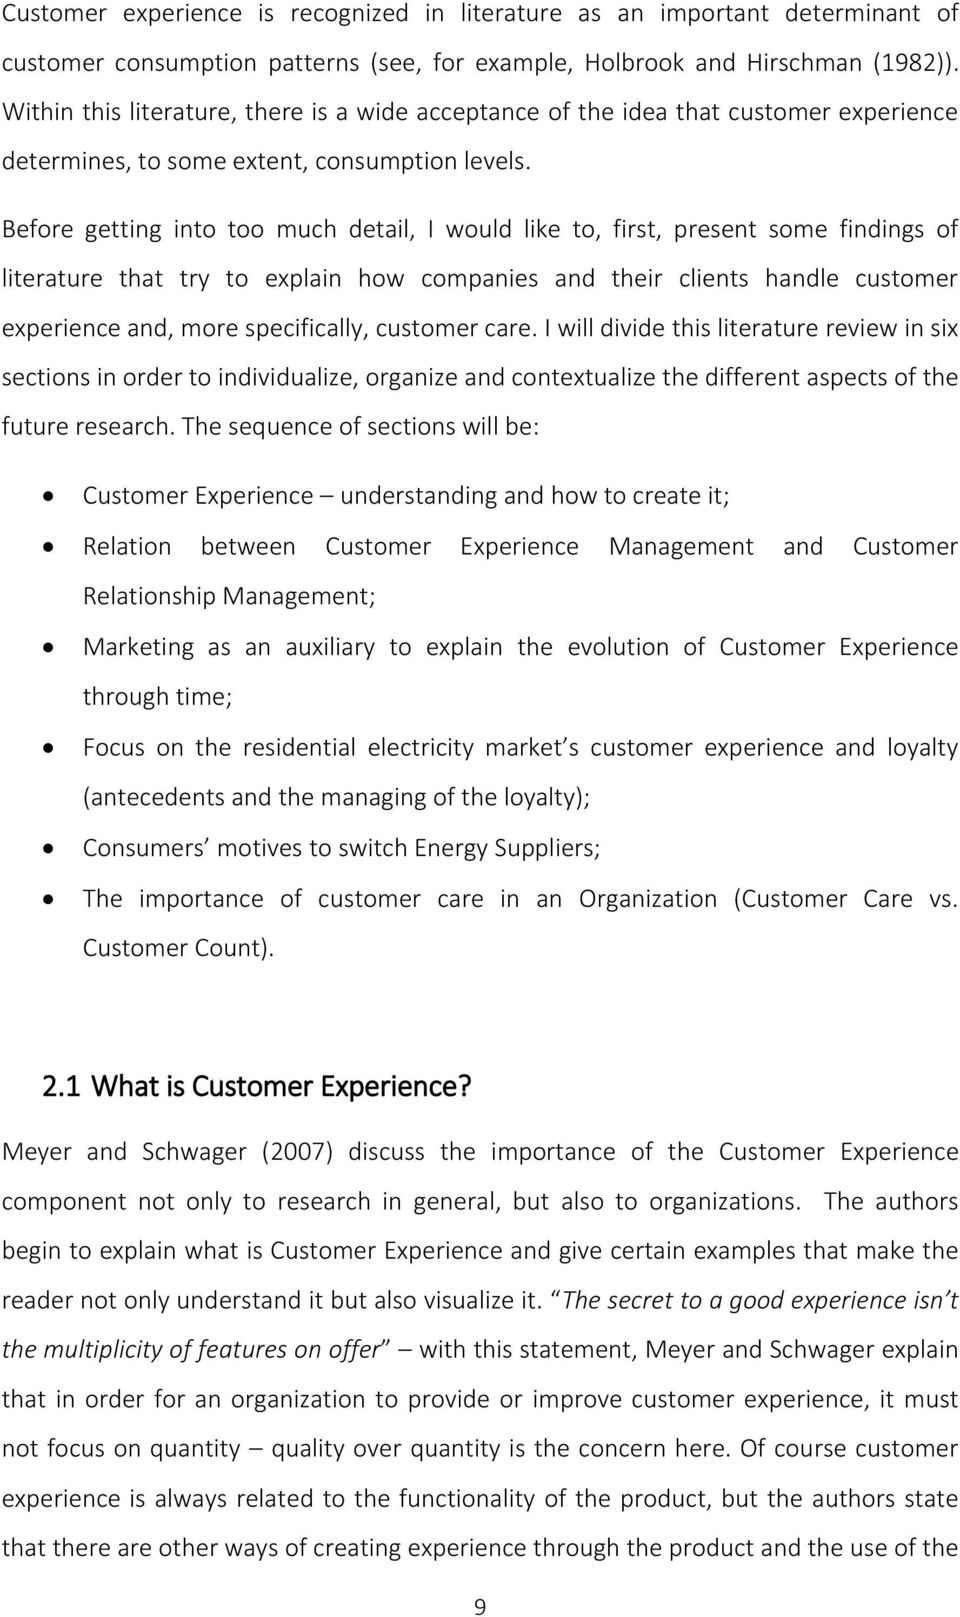 Before getting into too much detail, I would like to, first, present some findings of literature that try to explain how companies and their clients handle customer experience and, more specifically,